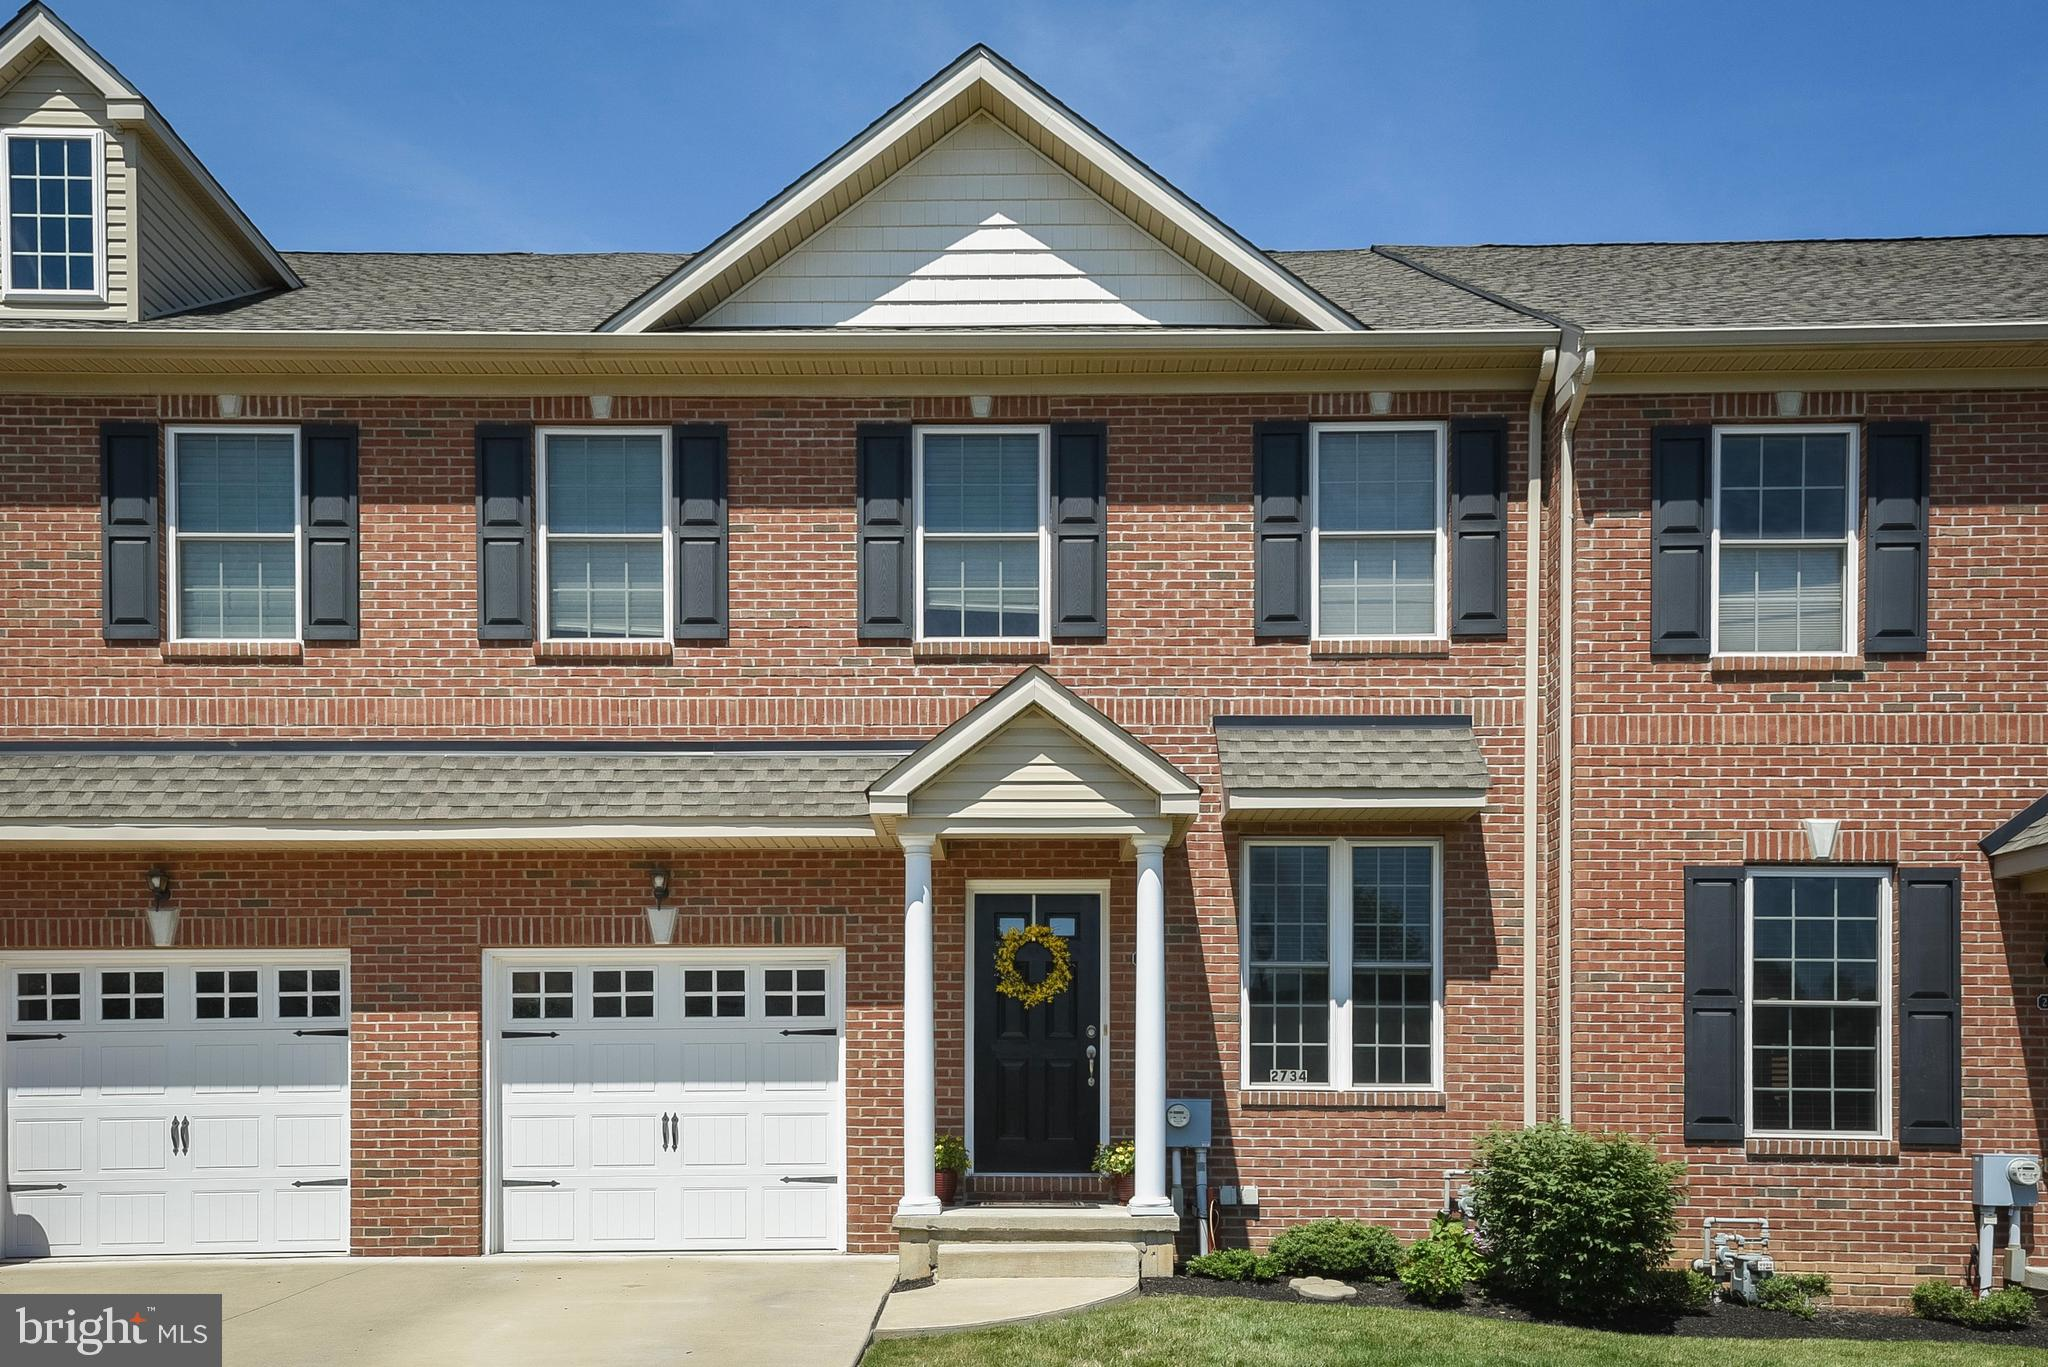 2734 KEEBLER COURT, WILLOW GROVE, PA 19090